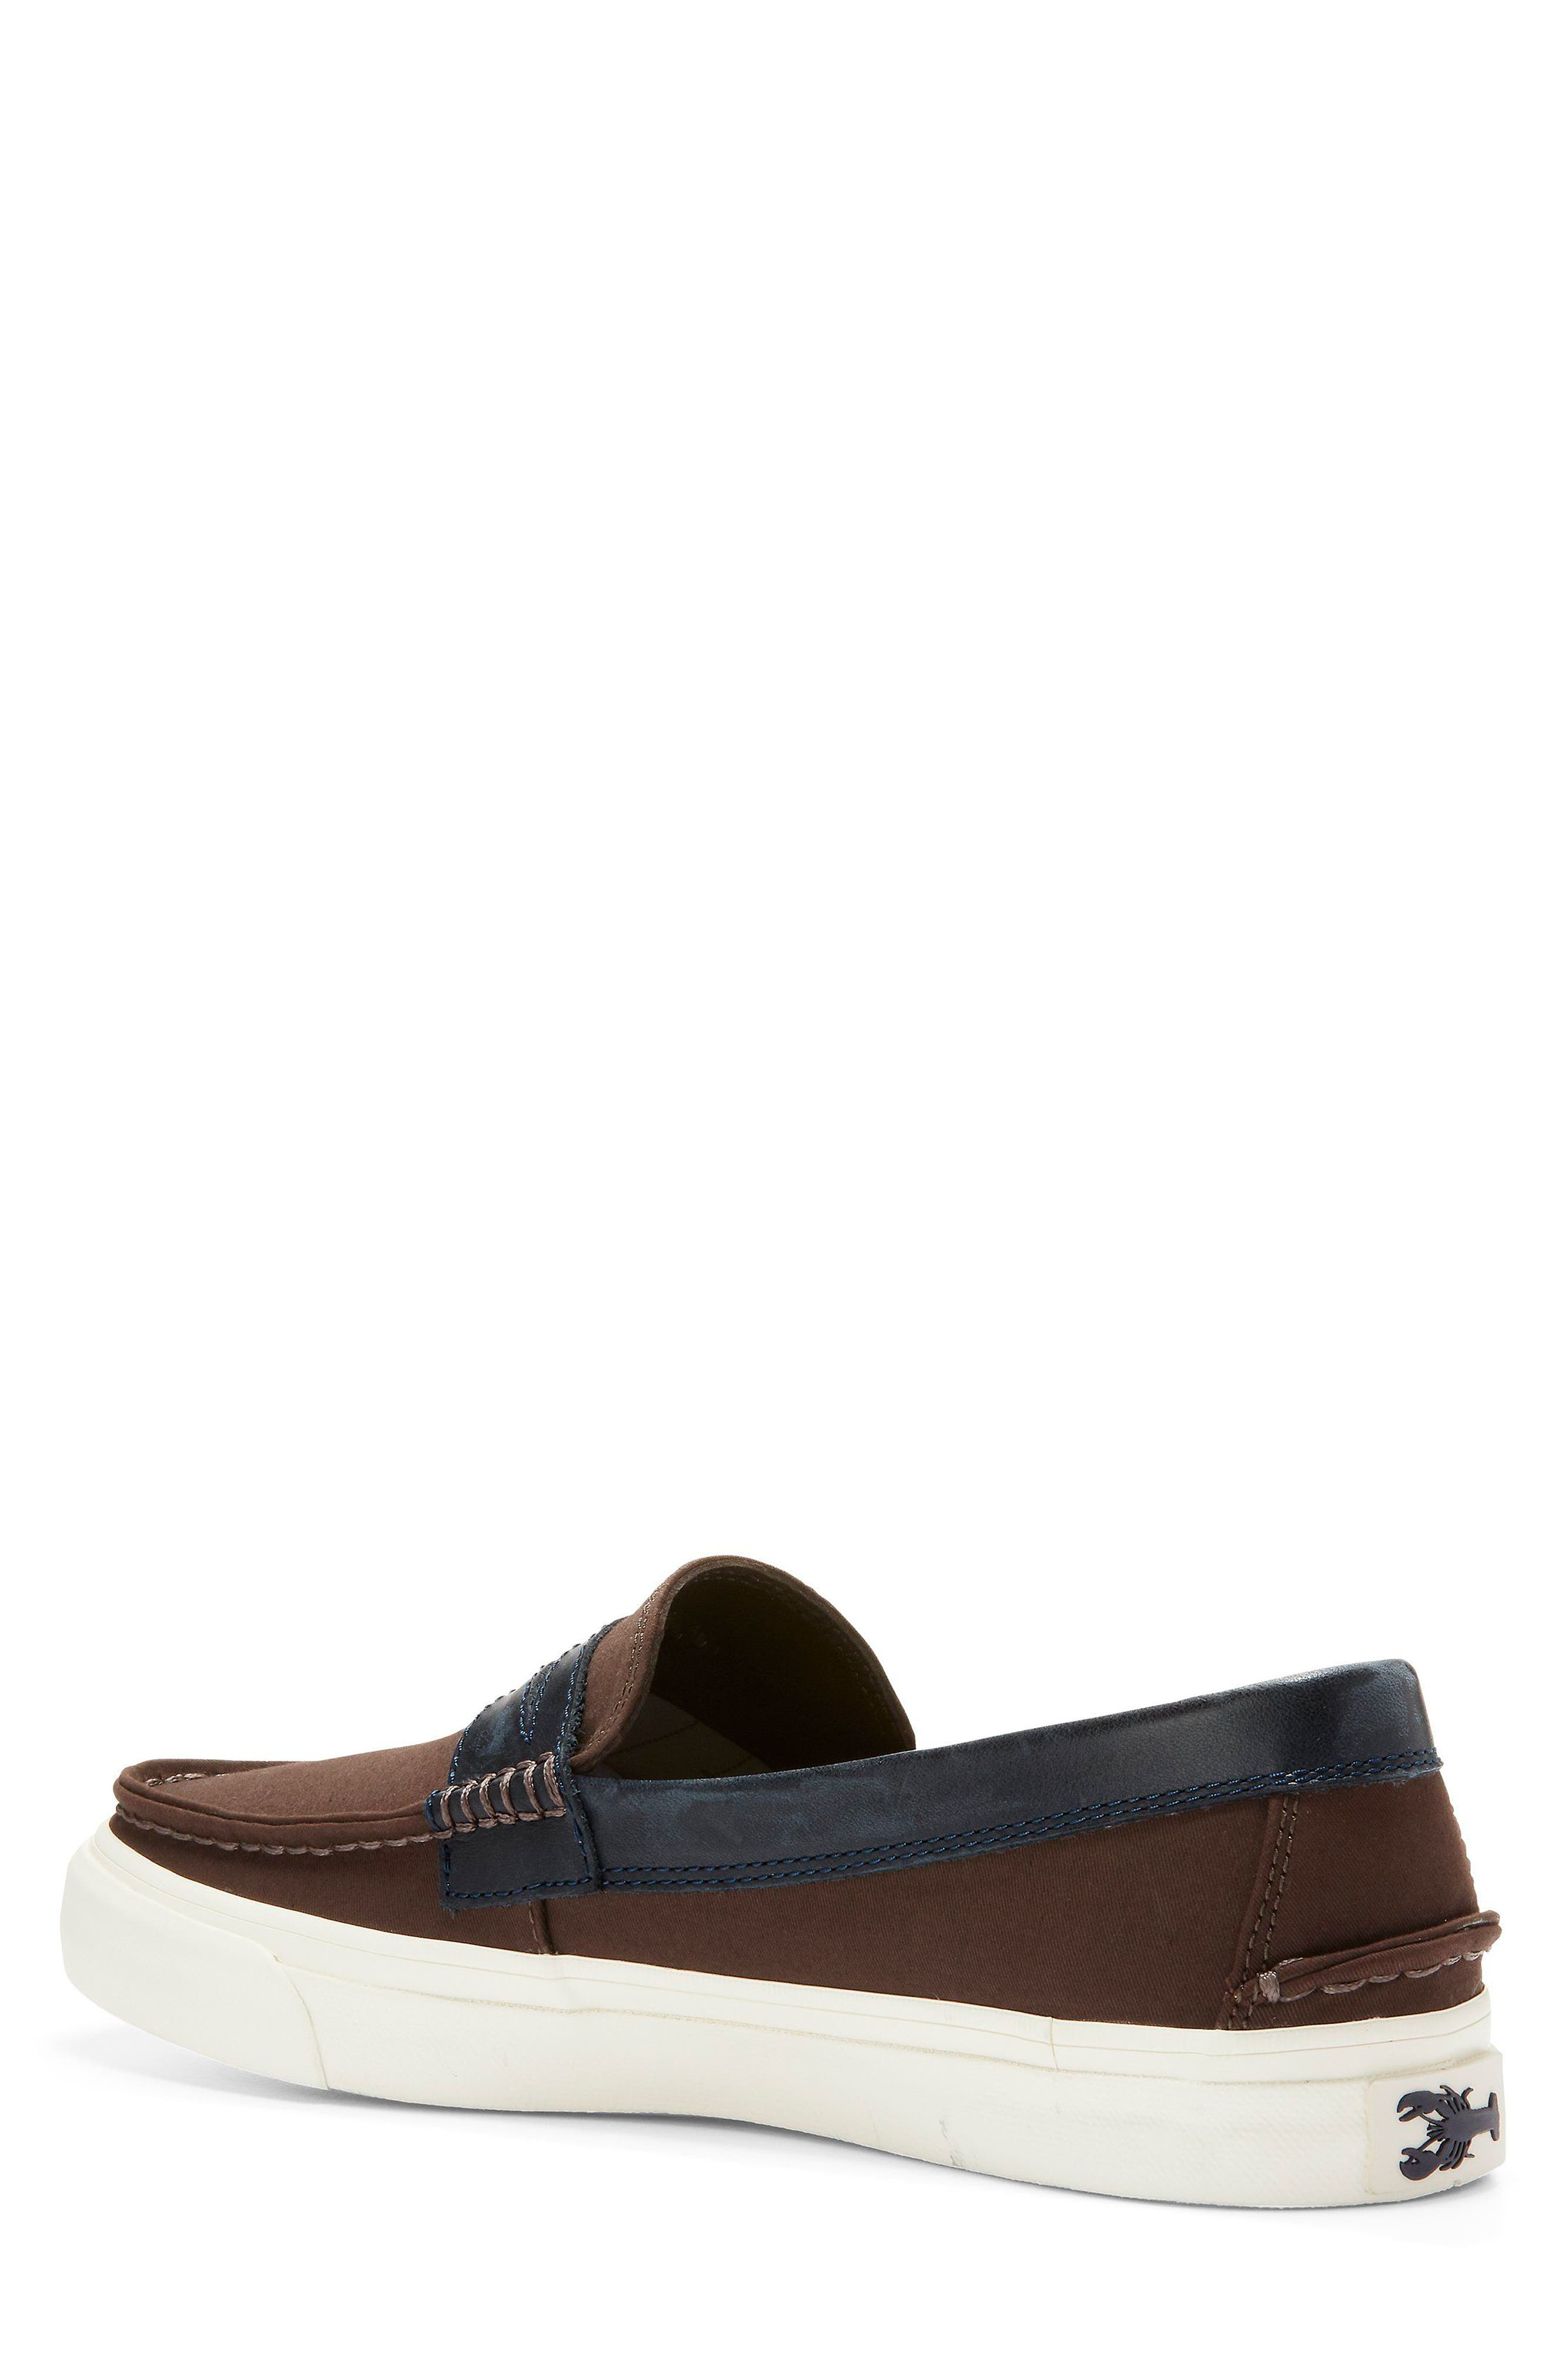 Pinch Weekend LX Penny Loafer,                             Alternate thumbnail 15, color,